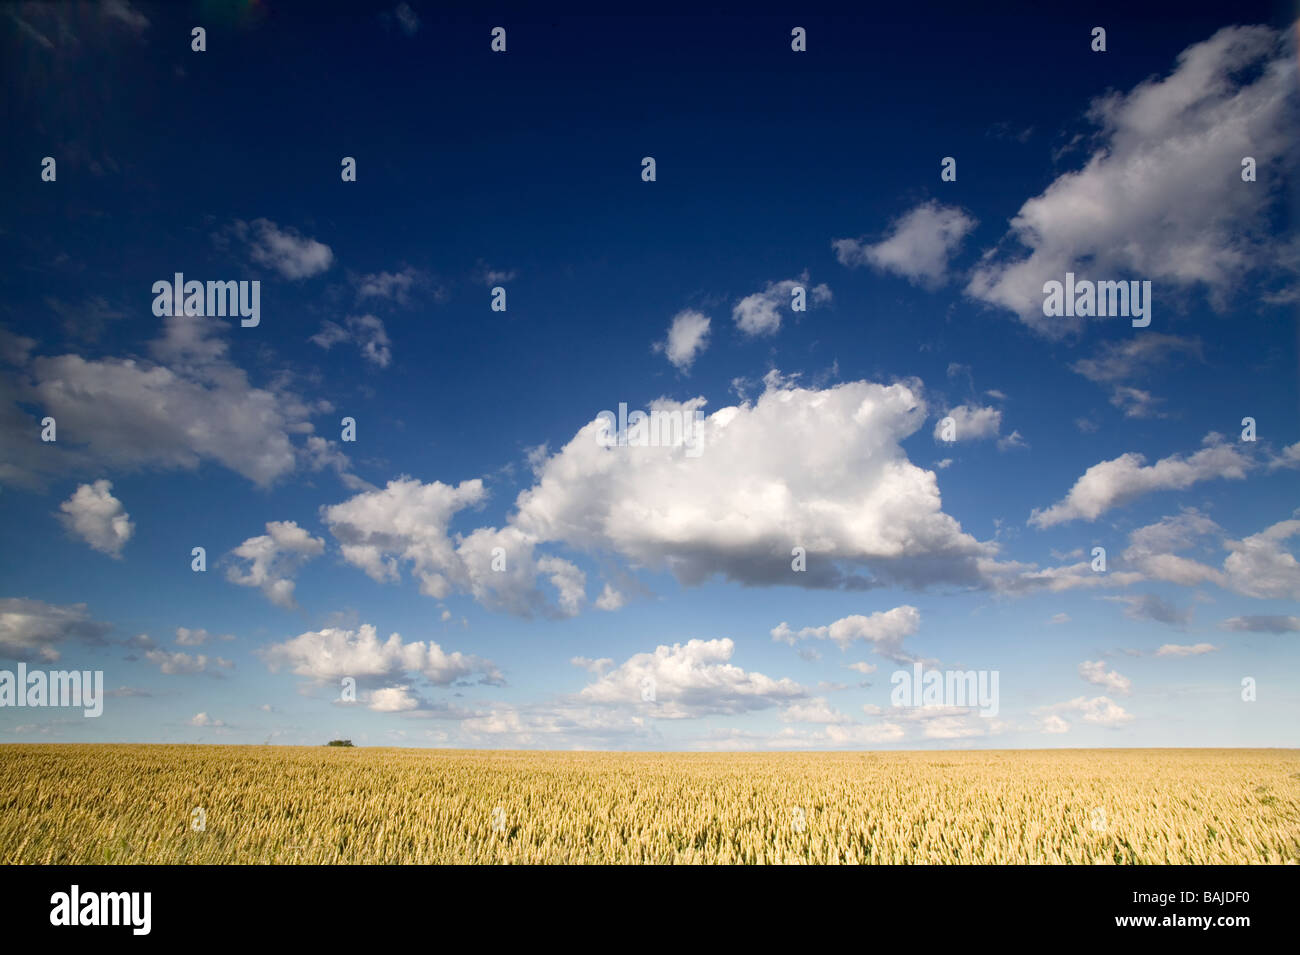 a view of an agricultural landscape over wheat field with blue sky and white flffy clouds in the height of summer - Stock Image